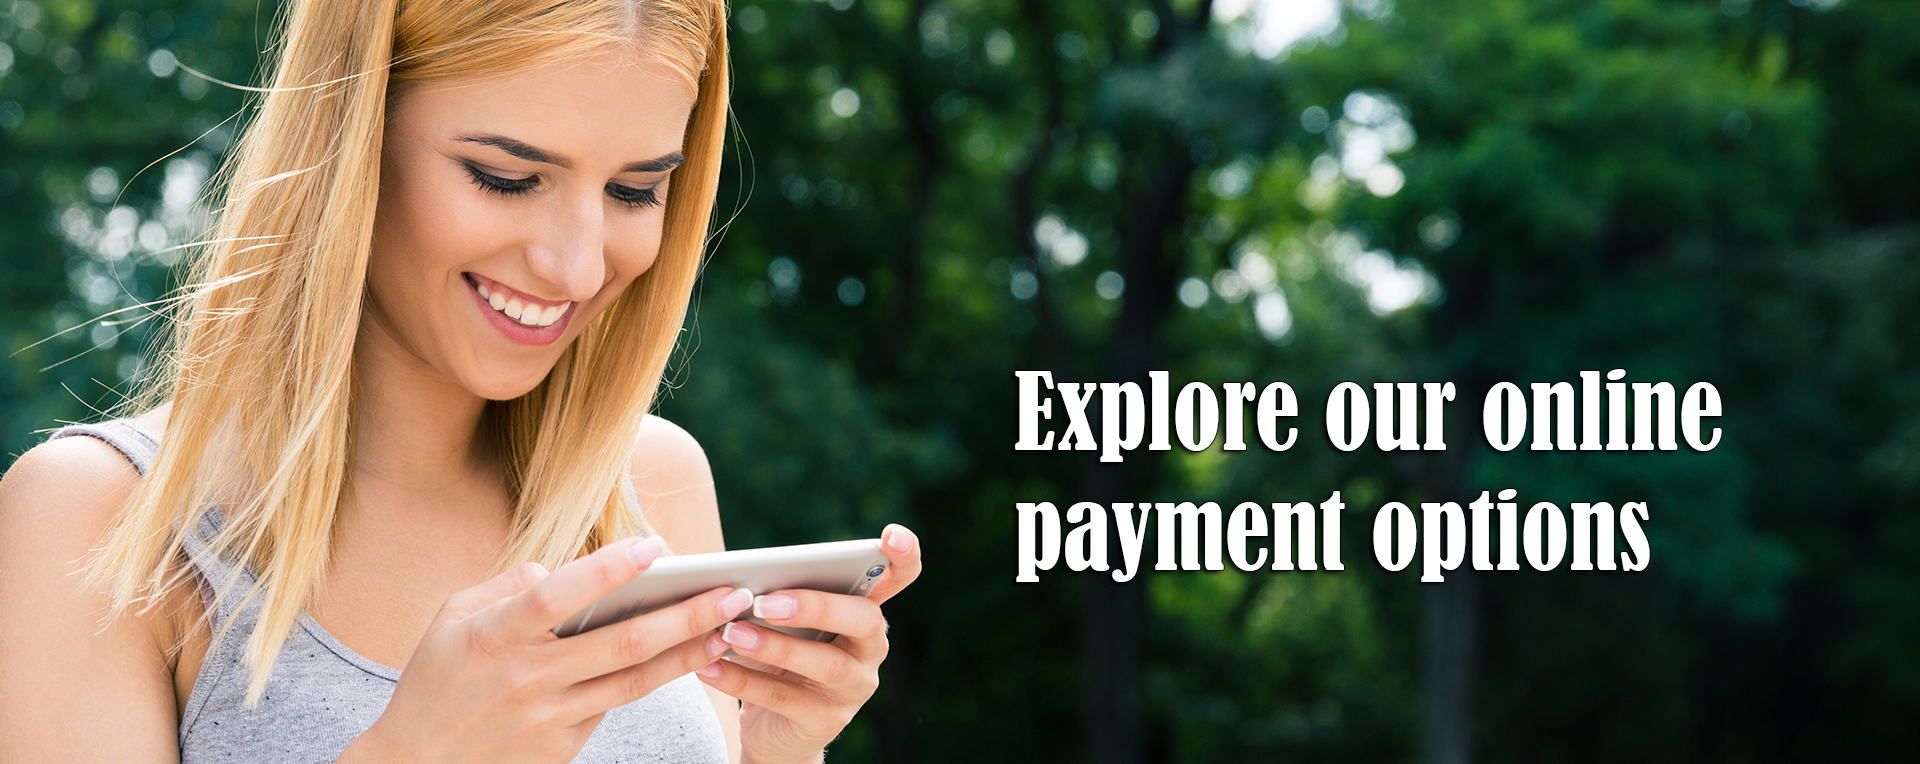 Explore online payment options at Leeds Water Works Board Leeds Alabama